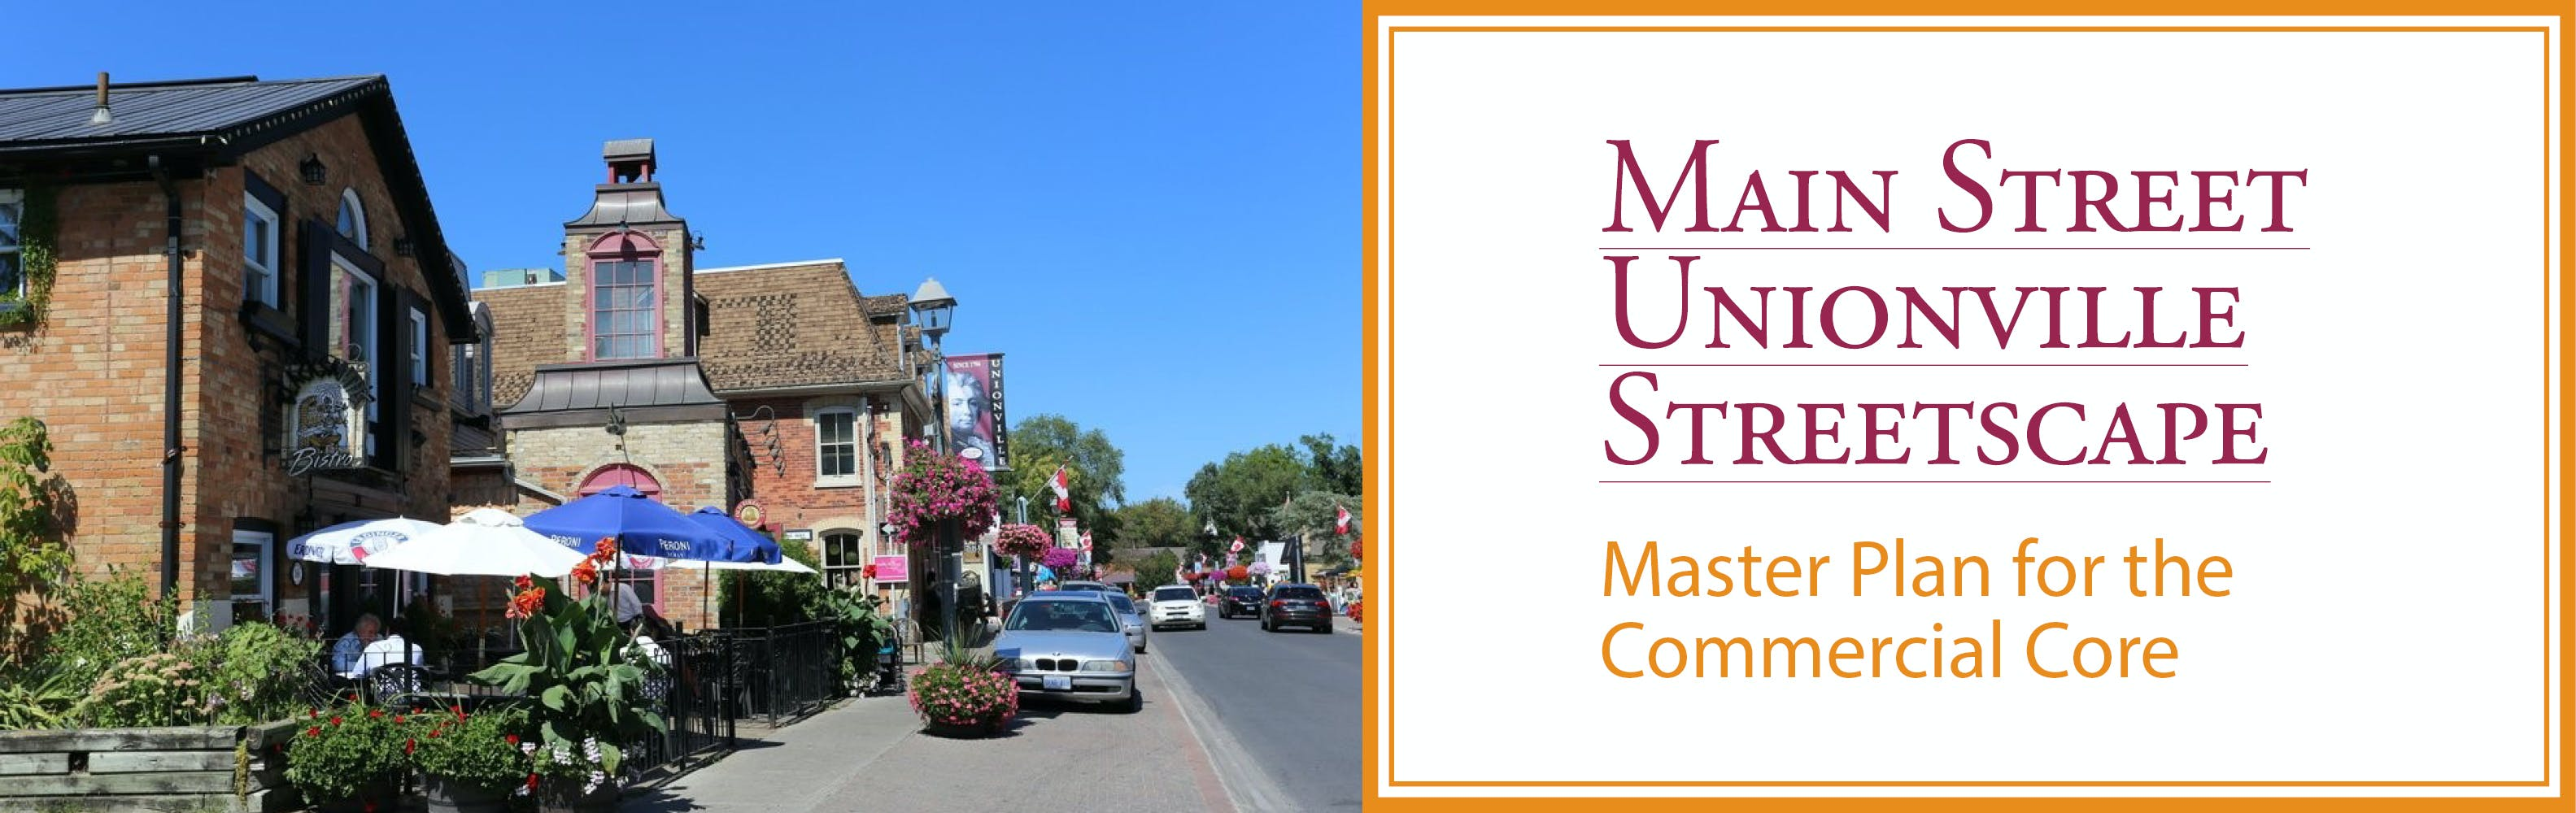 Main Street Unionville Streetscape Master Plan for the Commercial Core - Project Image